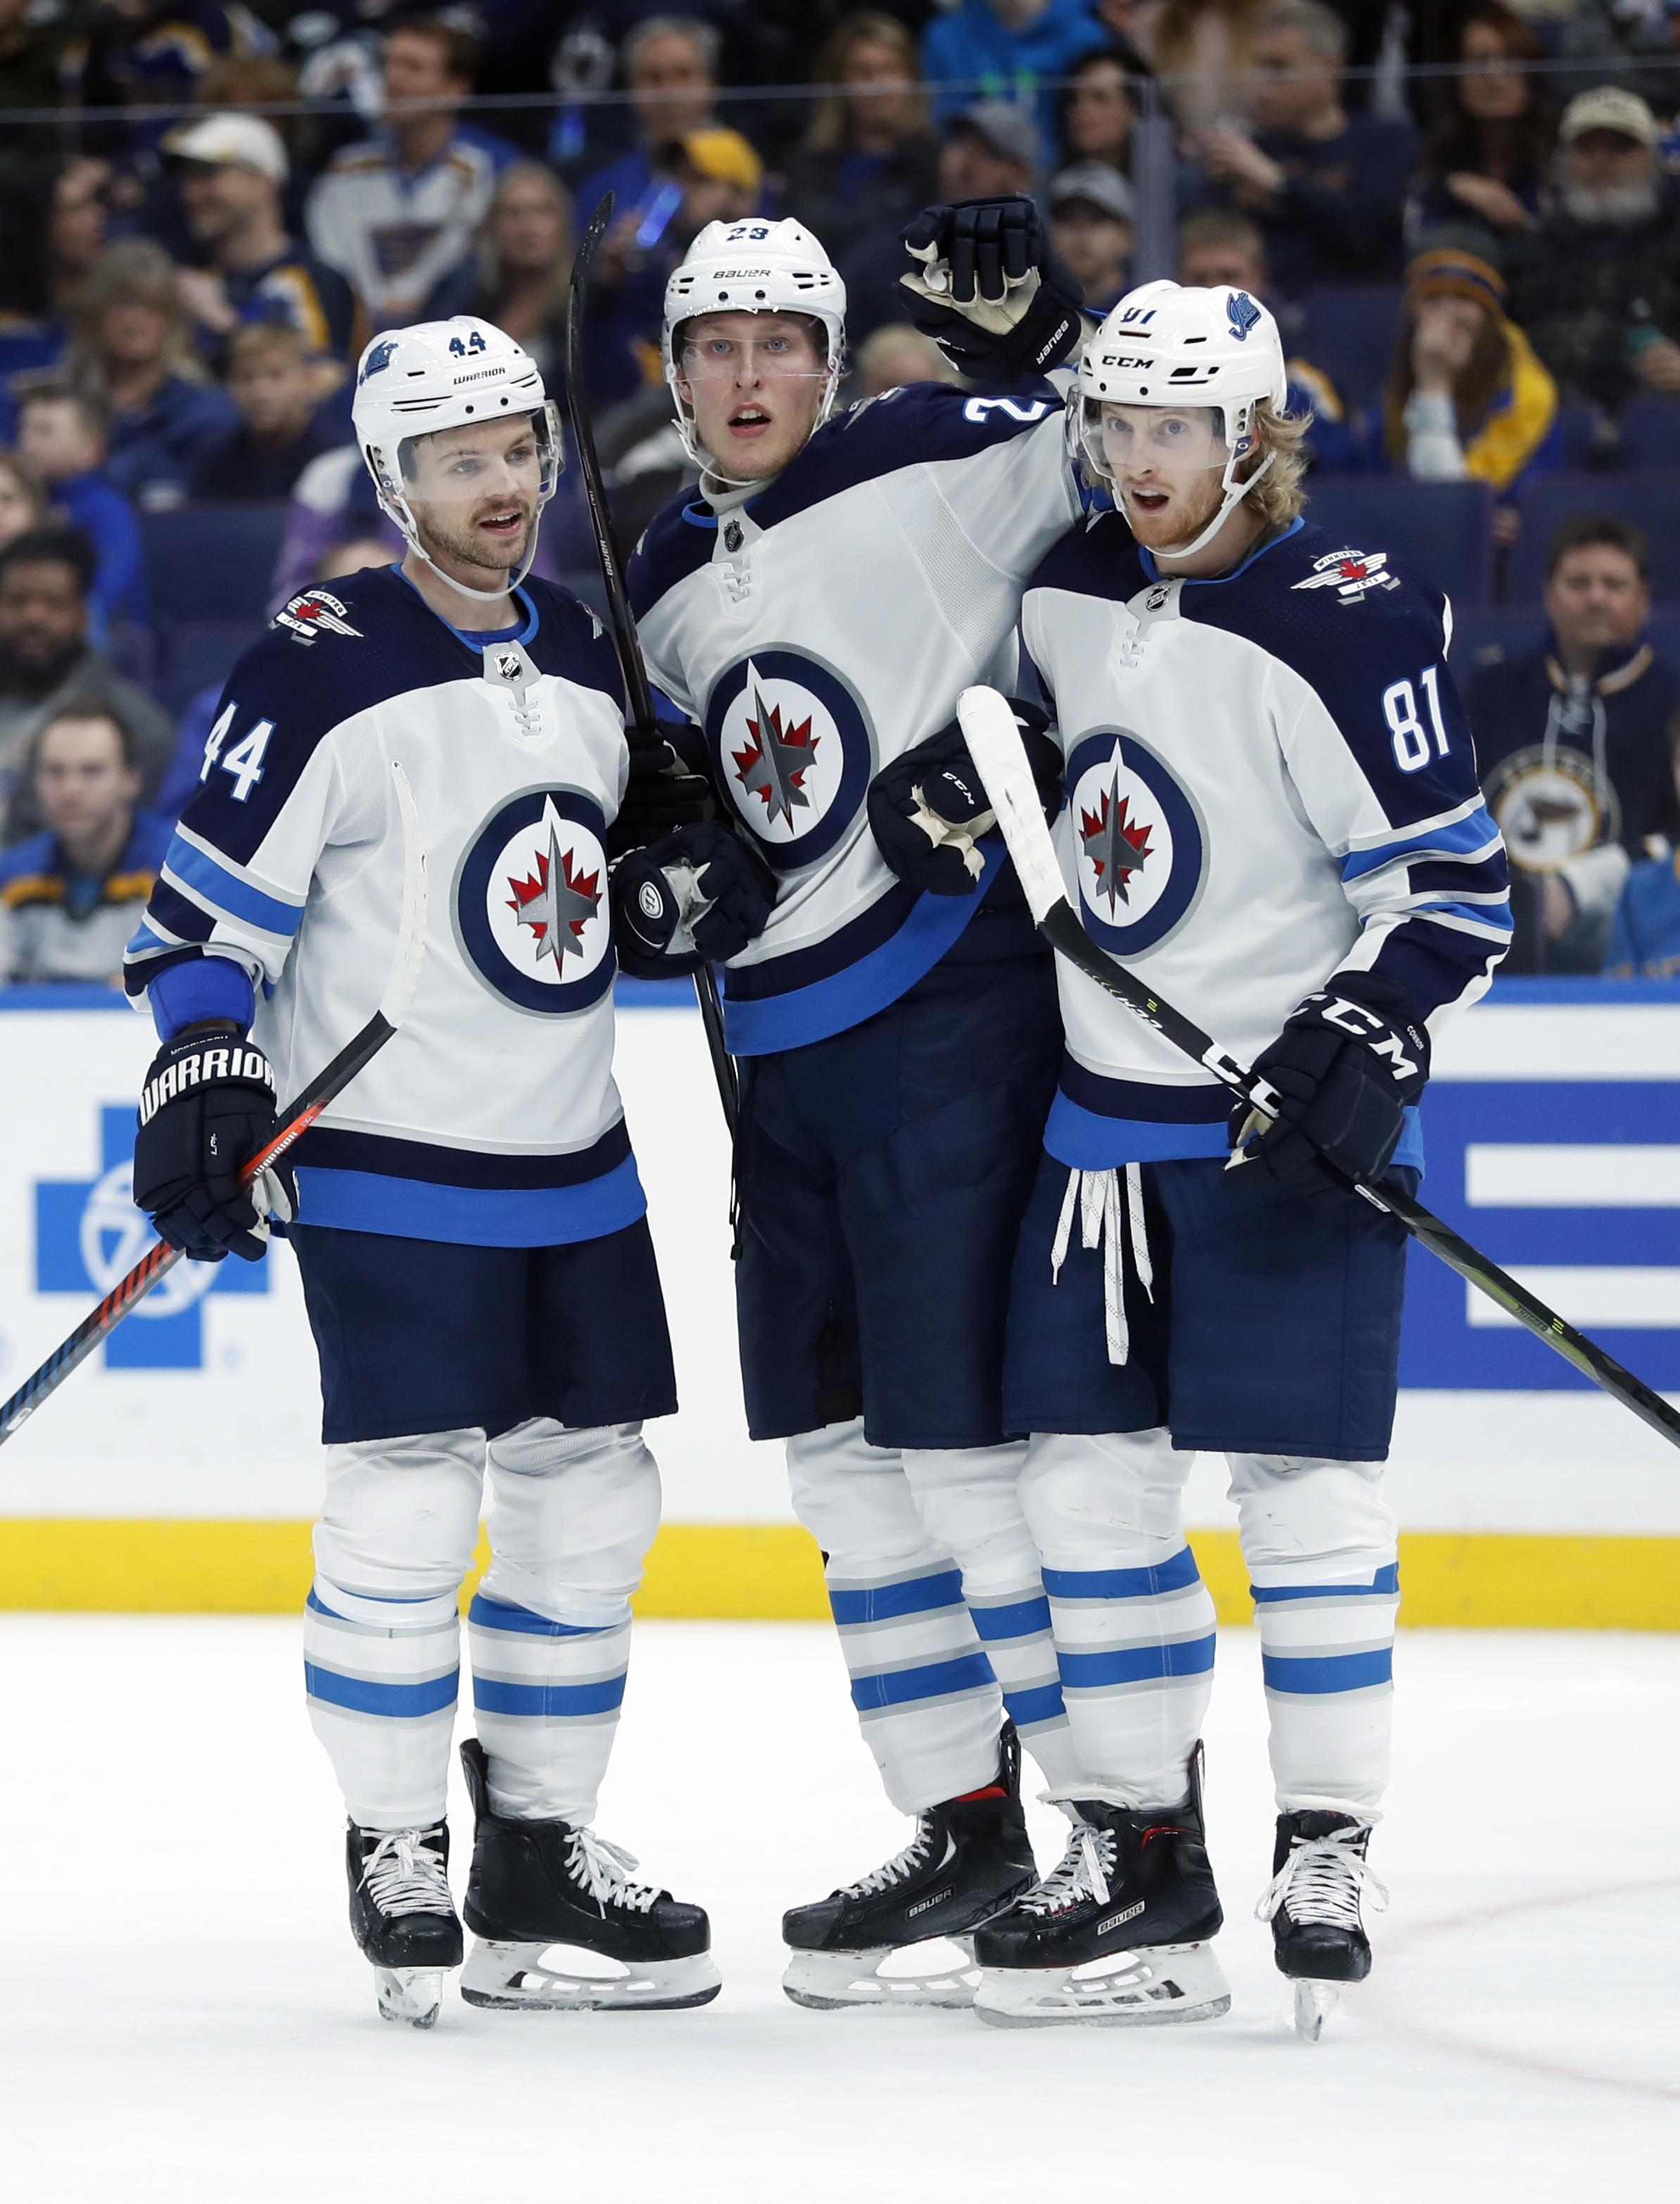 Laine Nhl Capsules Patrick Laine Nets 5 Goals Jets Defeat Blues 8 4